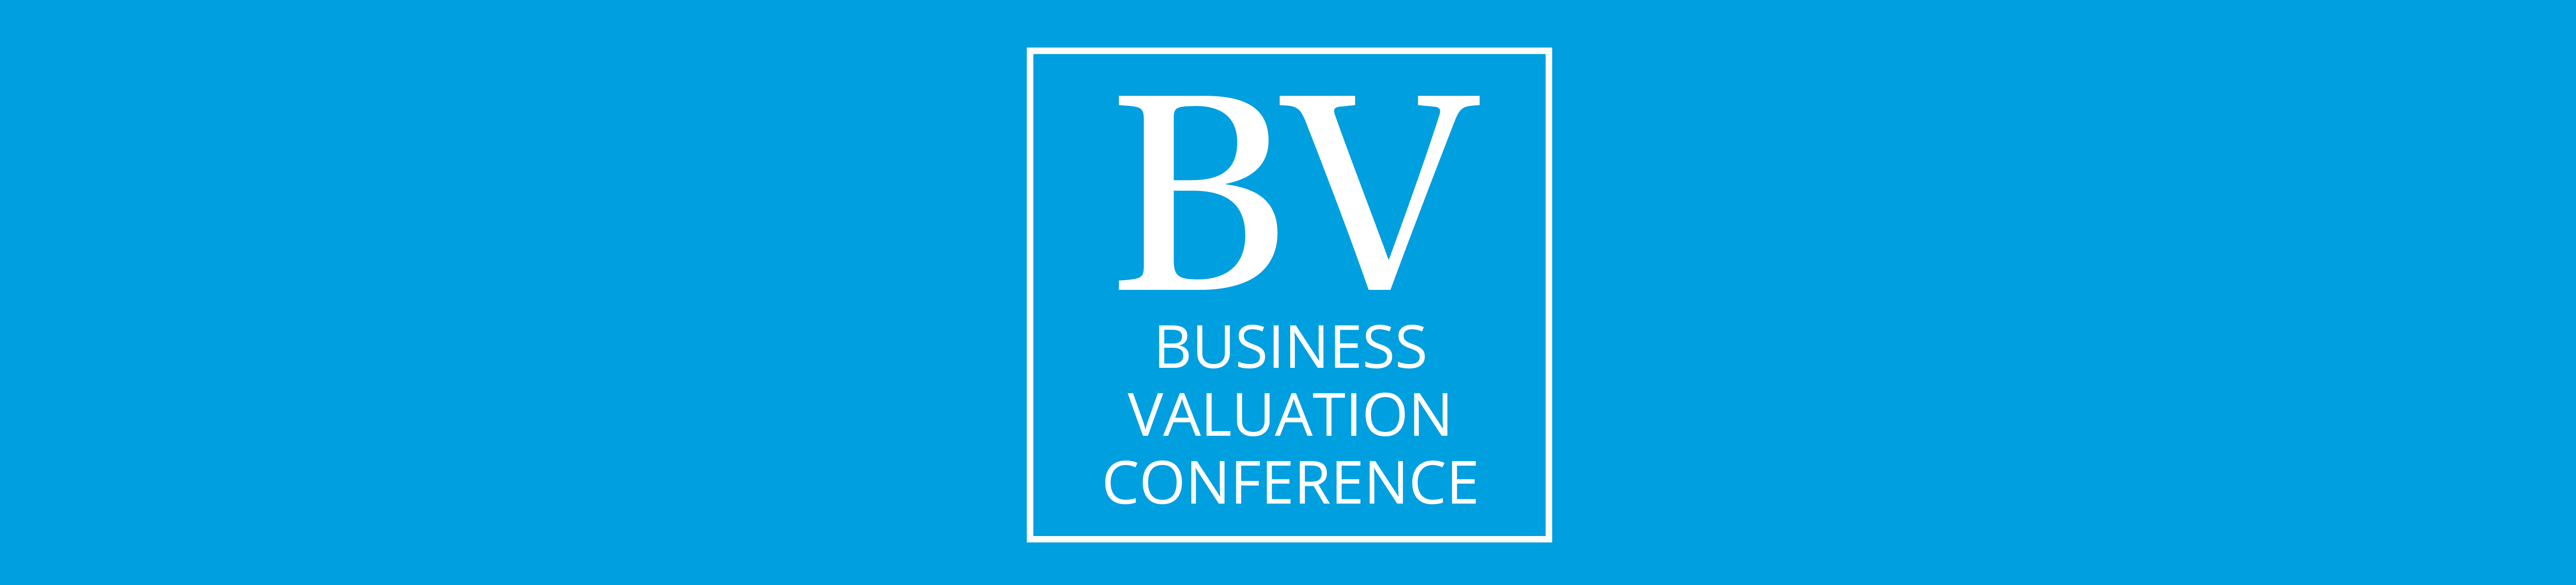 Business Valuation Conference